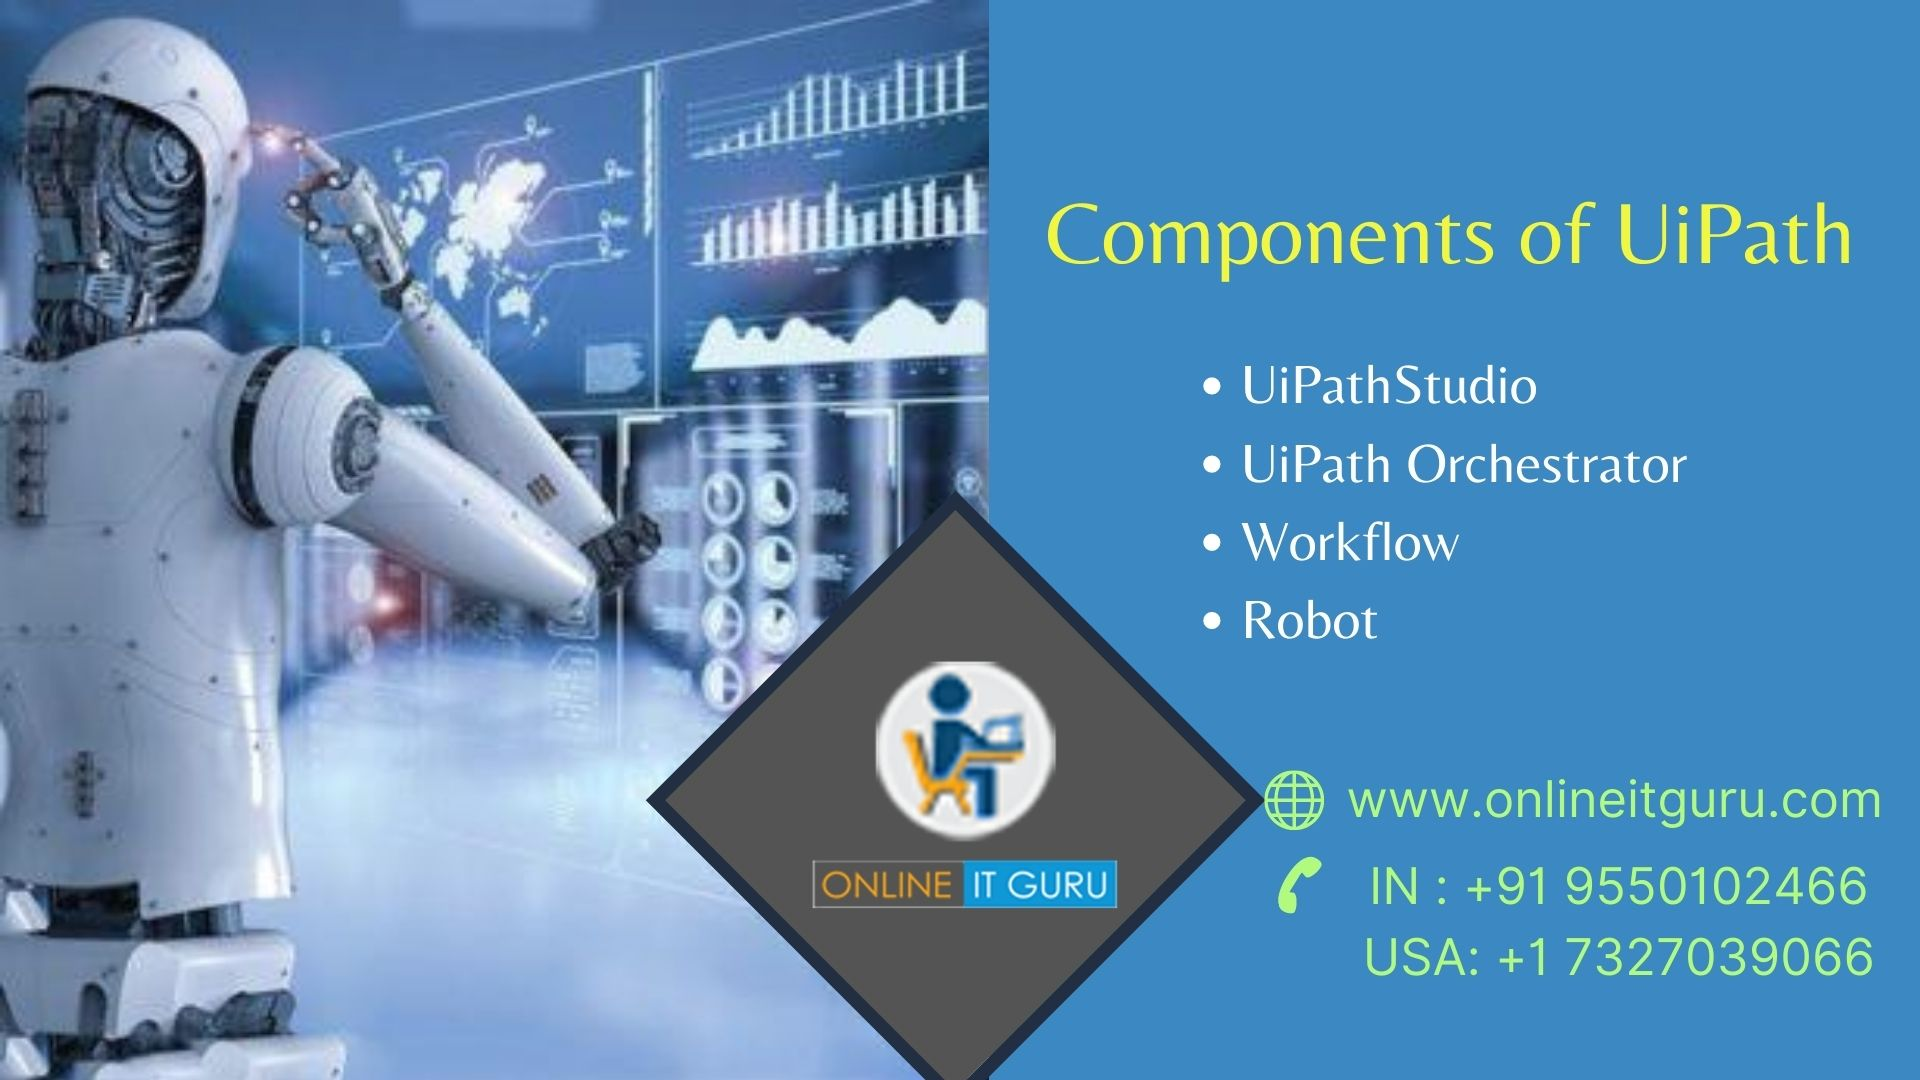 Ui Path Training in Hyderabad |  RPA Ui Path Training,Hyderabad,Services,Education & Classes,77traders